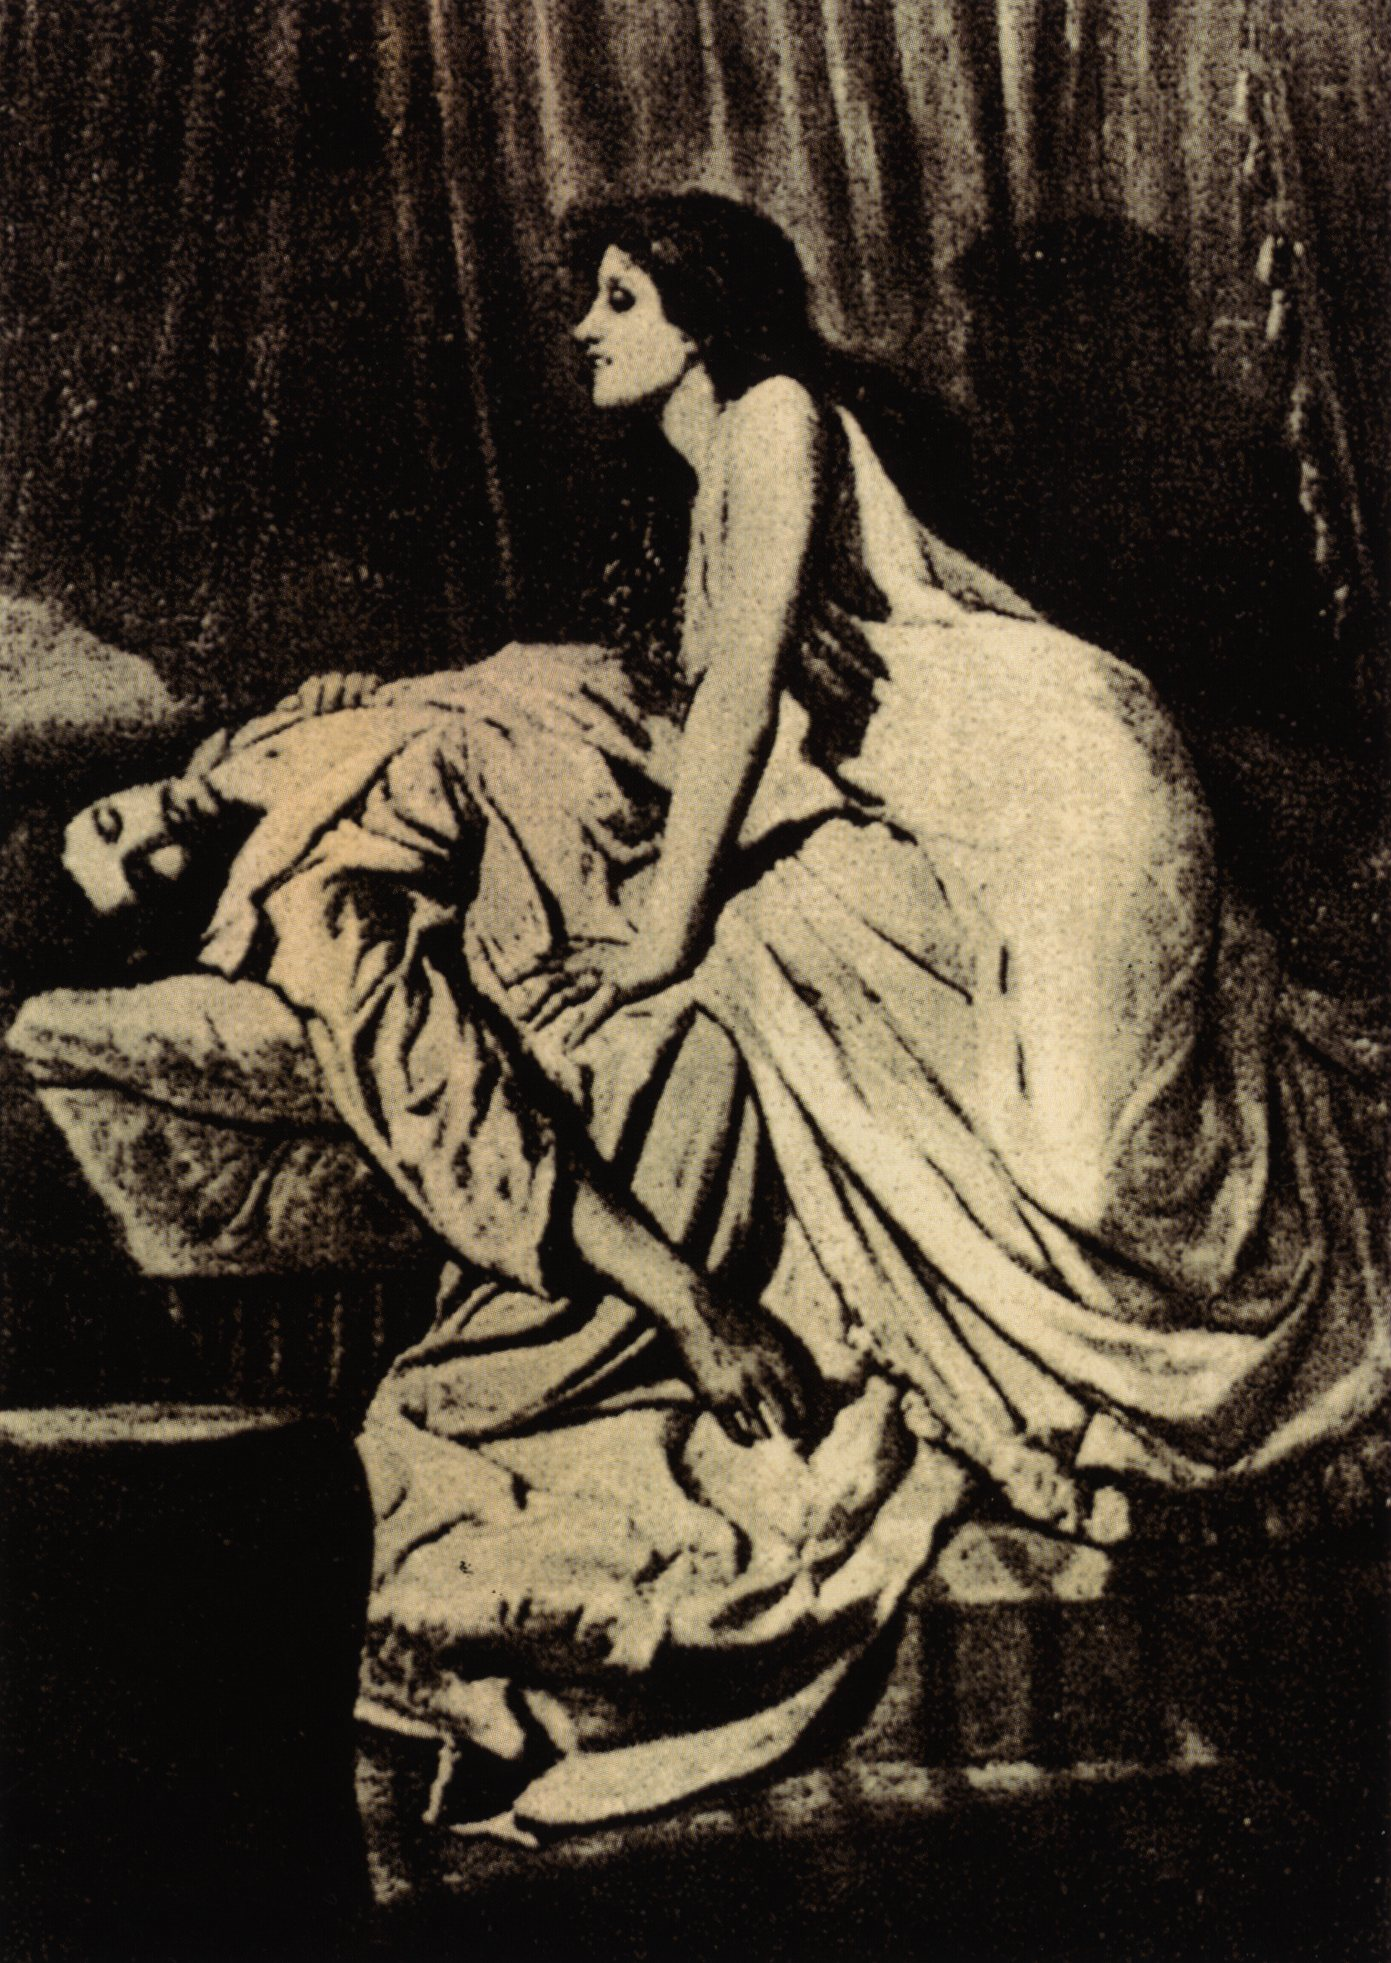 http://upload.wikimedia.org/wikipedia/commons/b/bc/Burne-Jones-le-Vampire.jpg